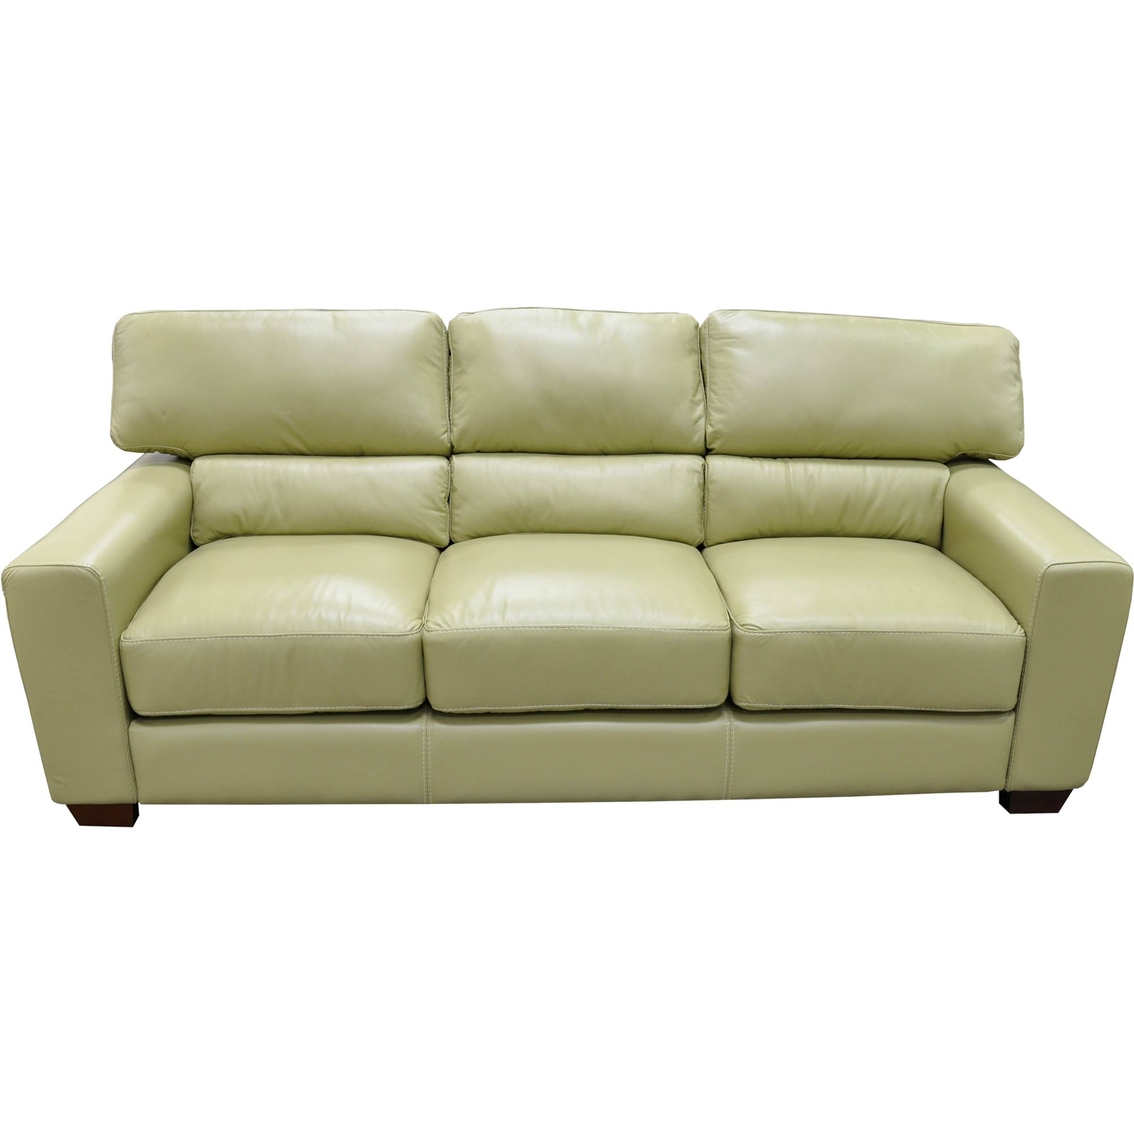 omnia sofa prices cheap suites ireland leather jacob sofas and couches home